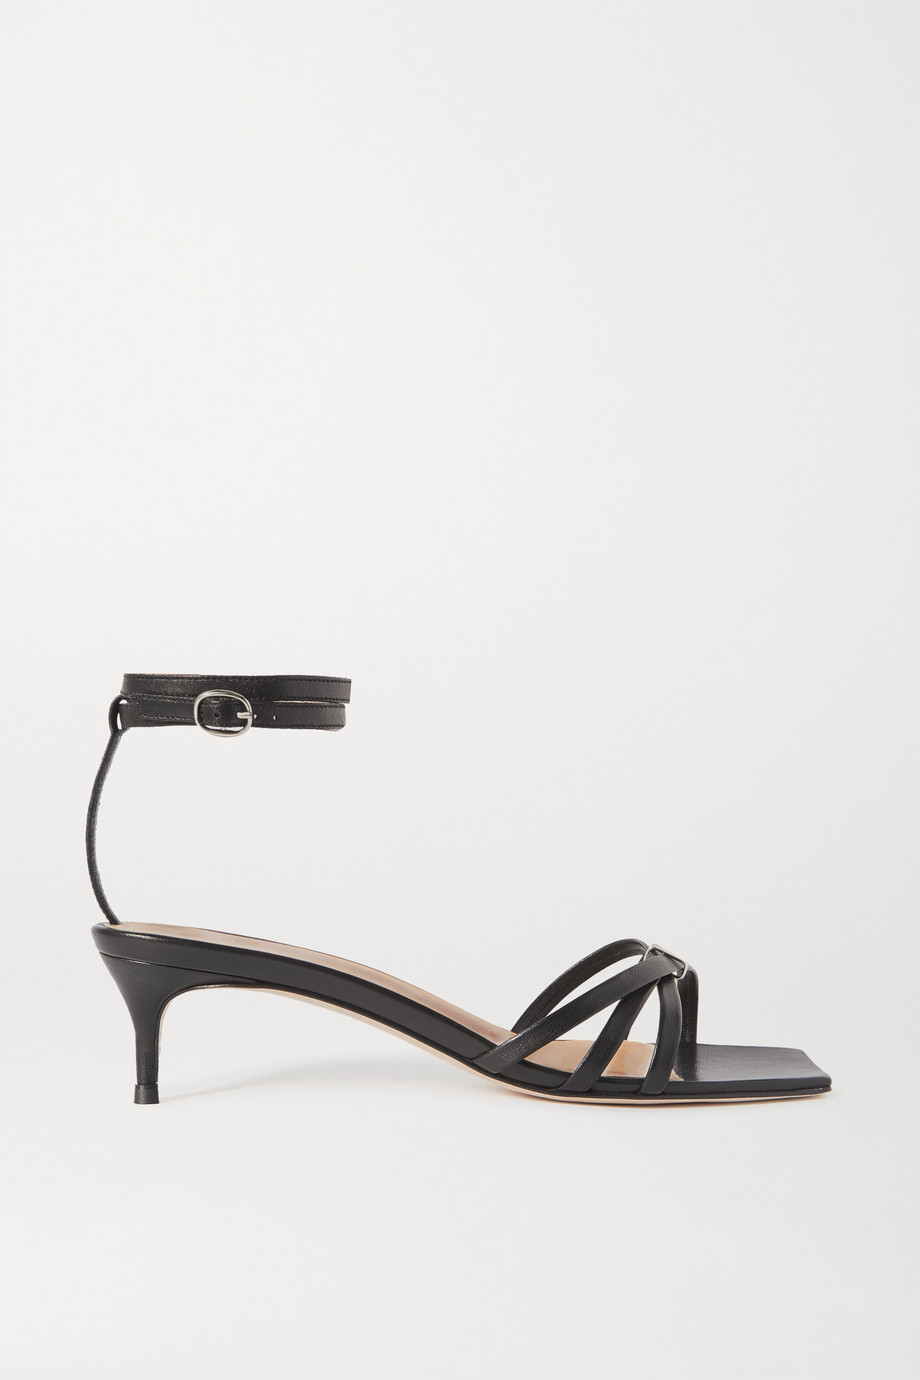 BY FAR Kaia leather sandals